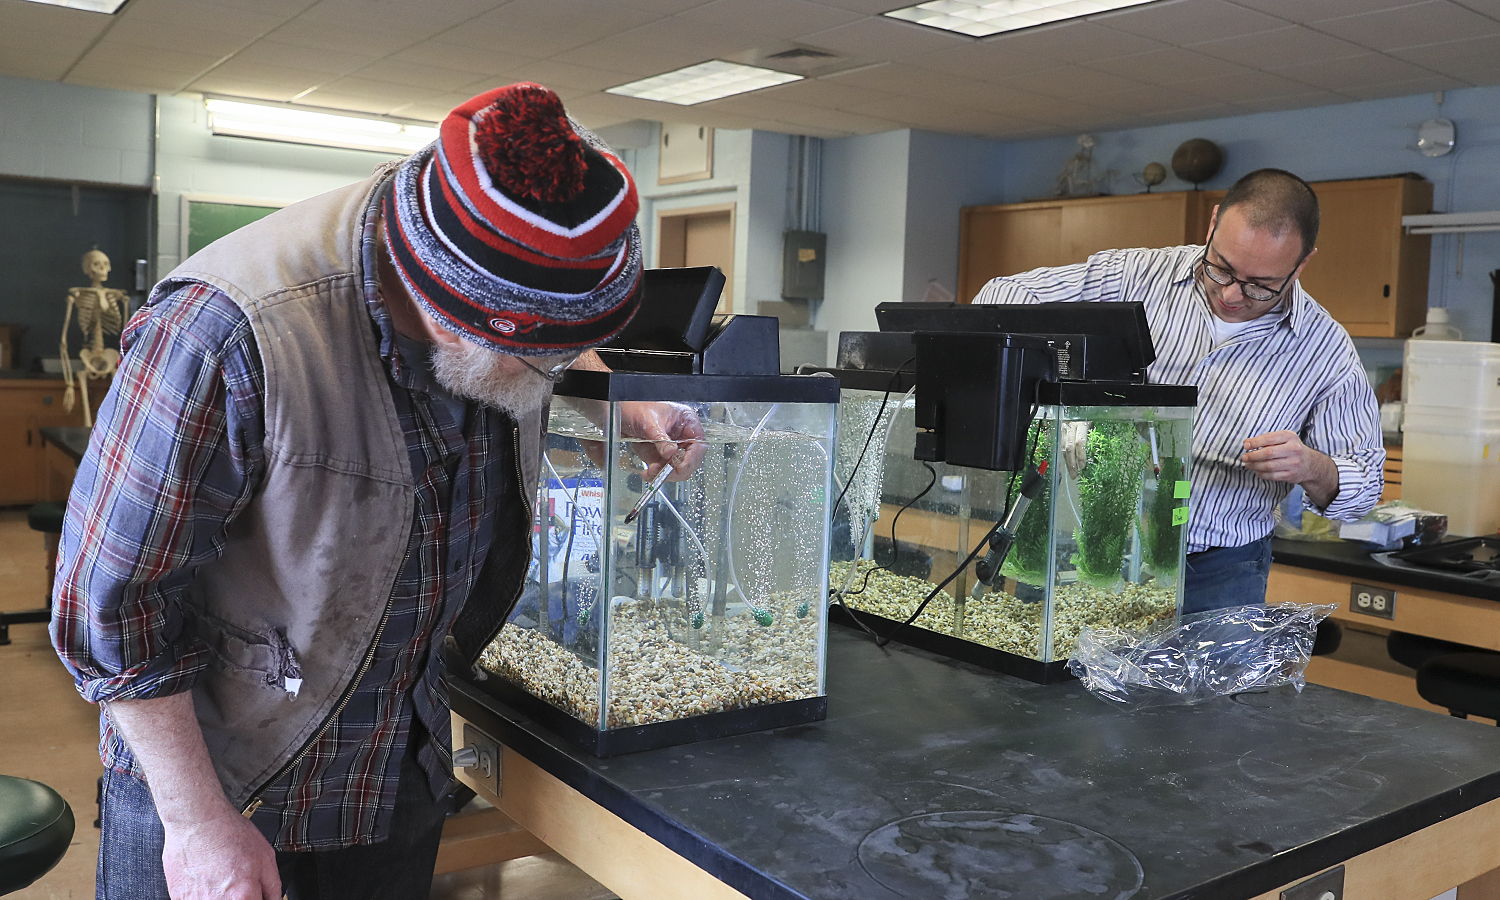 """Animal and Plant Technician Jim Norwalk and Visiting Assistant Professor of Biology David Holtzman set up fish tanks as part of a """"Vertebrate Biology"""" lab examining schooling behavior in swordtails and platyfish to demonstrate preferences based on school size and their ability to quantify differences in school size."""